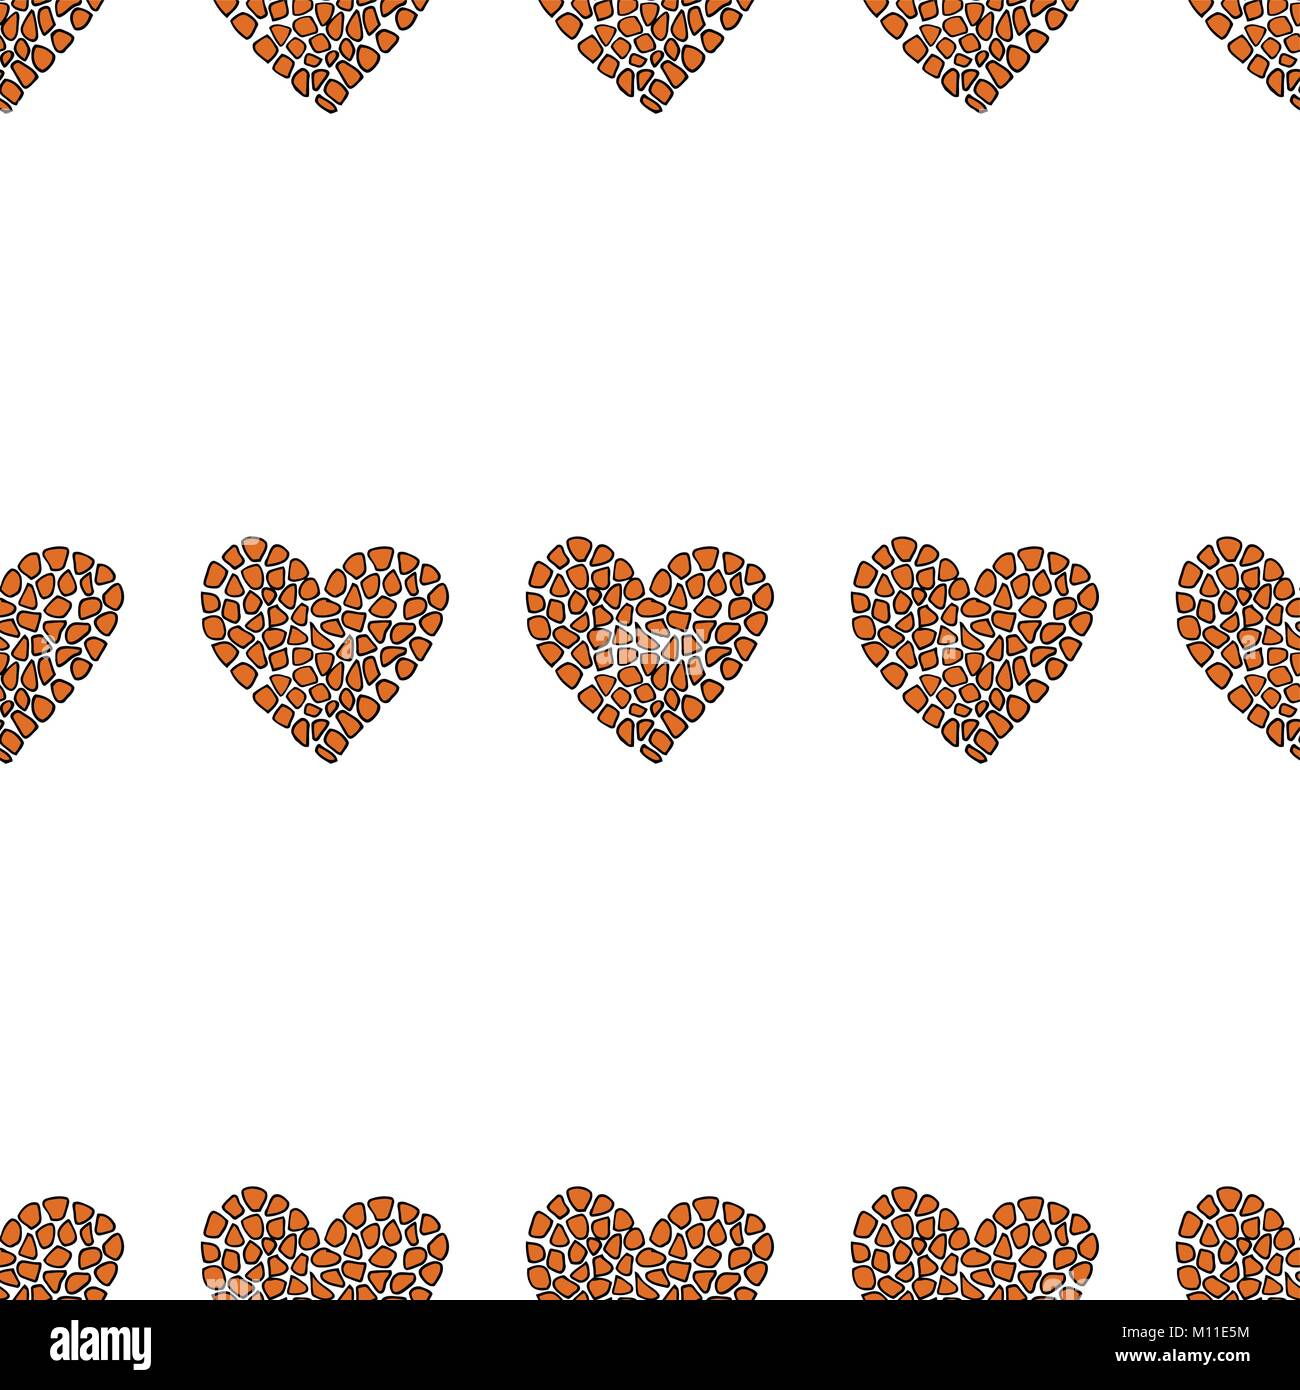 Seamless pattern with animal heart. - Stock Image